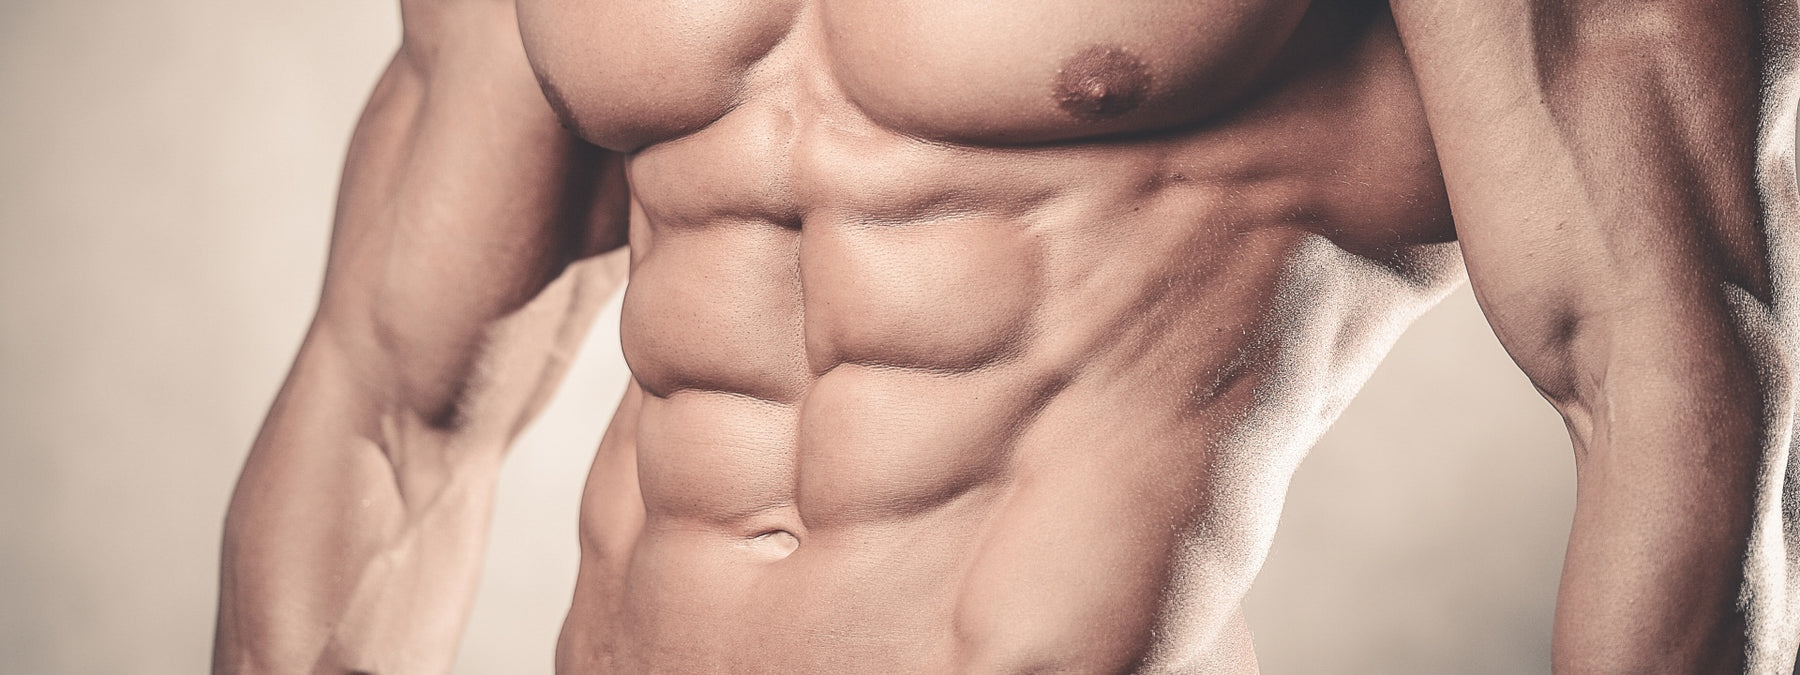 How to Get Shredded and Stay That Way 24/7/365